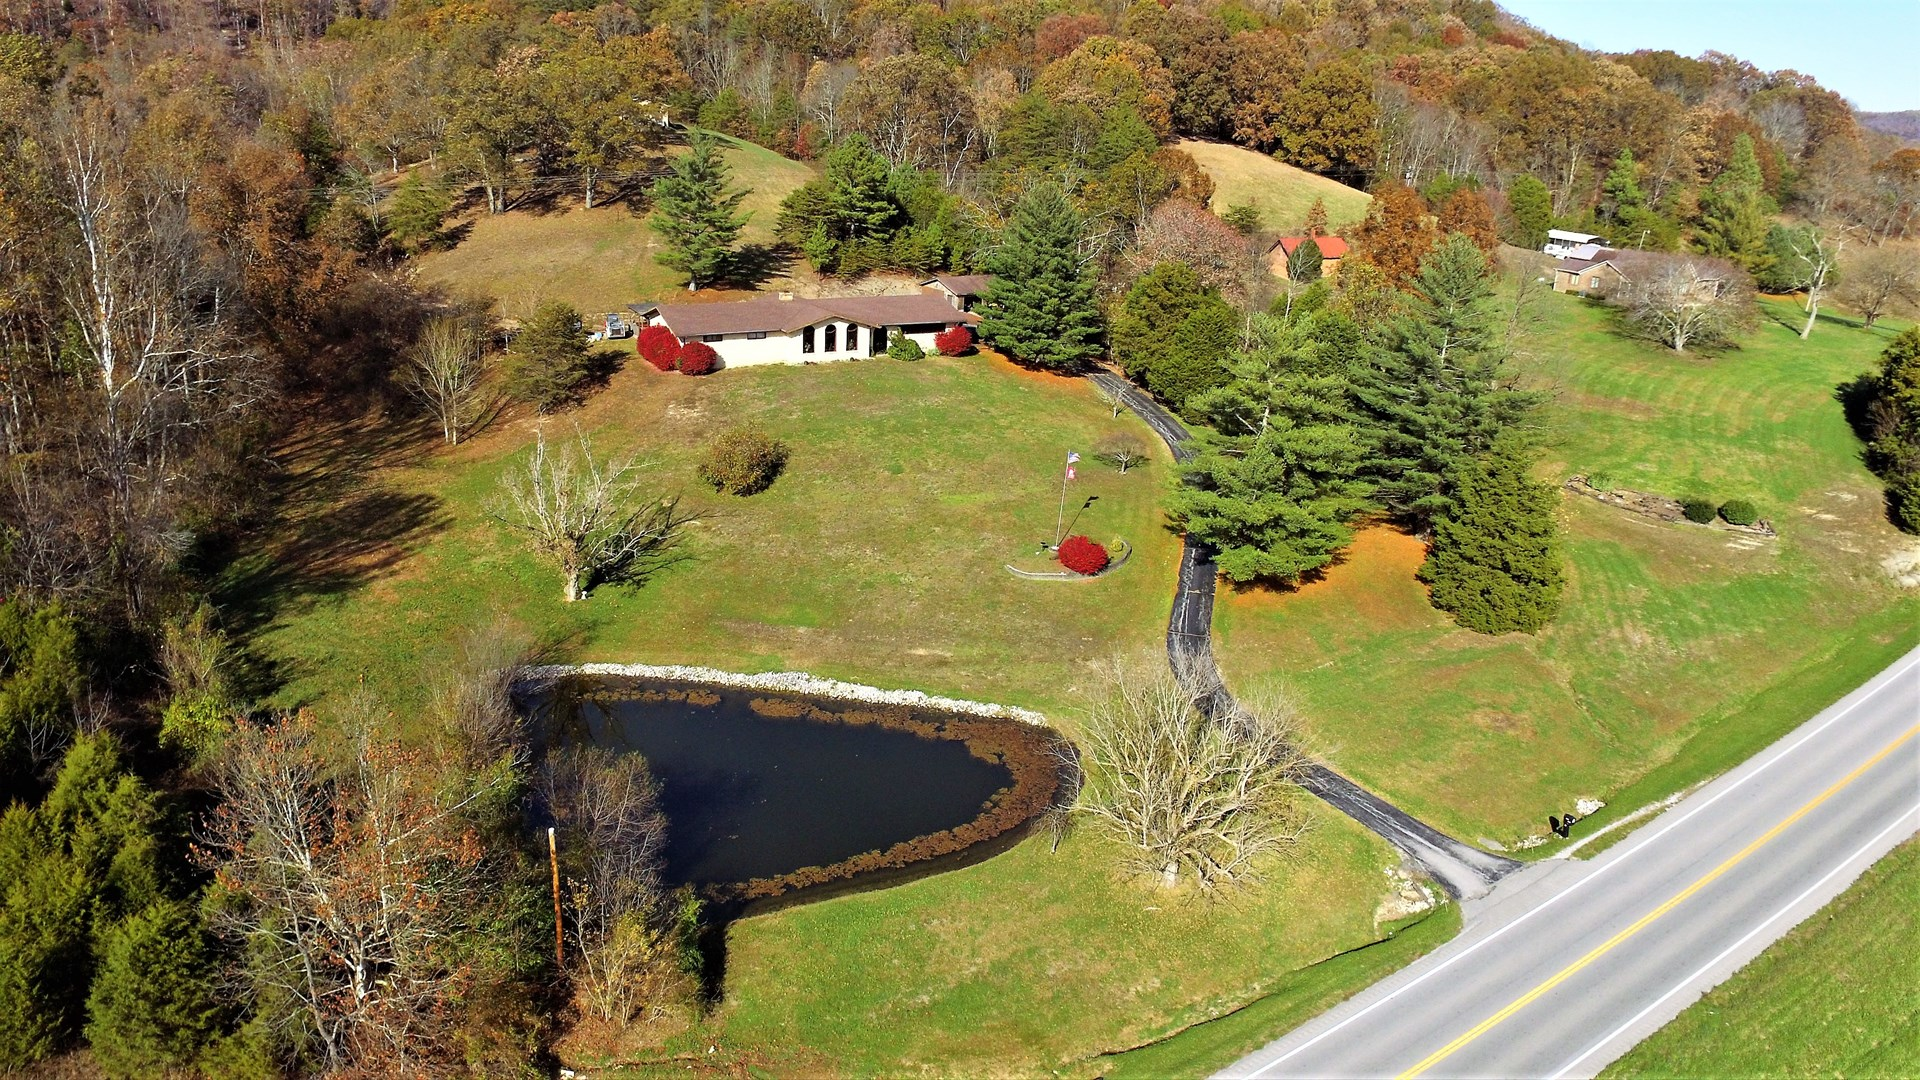 4 BED 2.5 BATH HOME WITH OUTBUILDINGS ON 5 ACRES-LIBERTY, KY